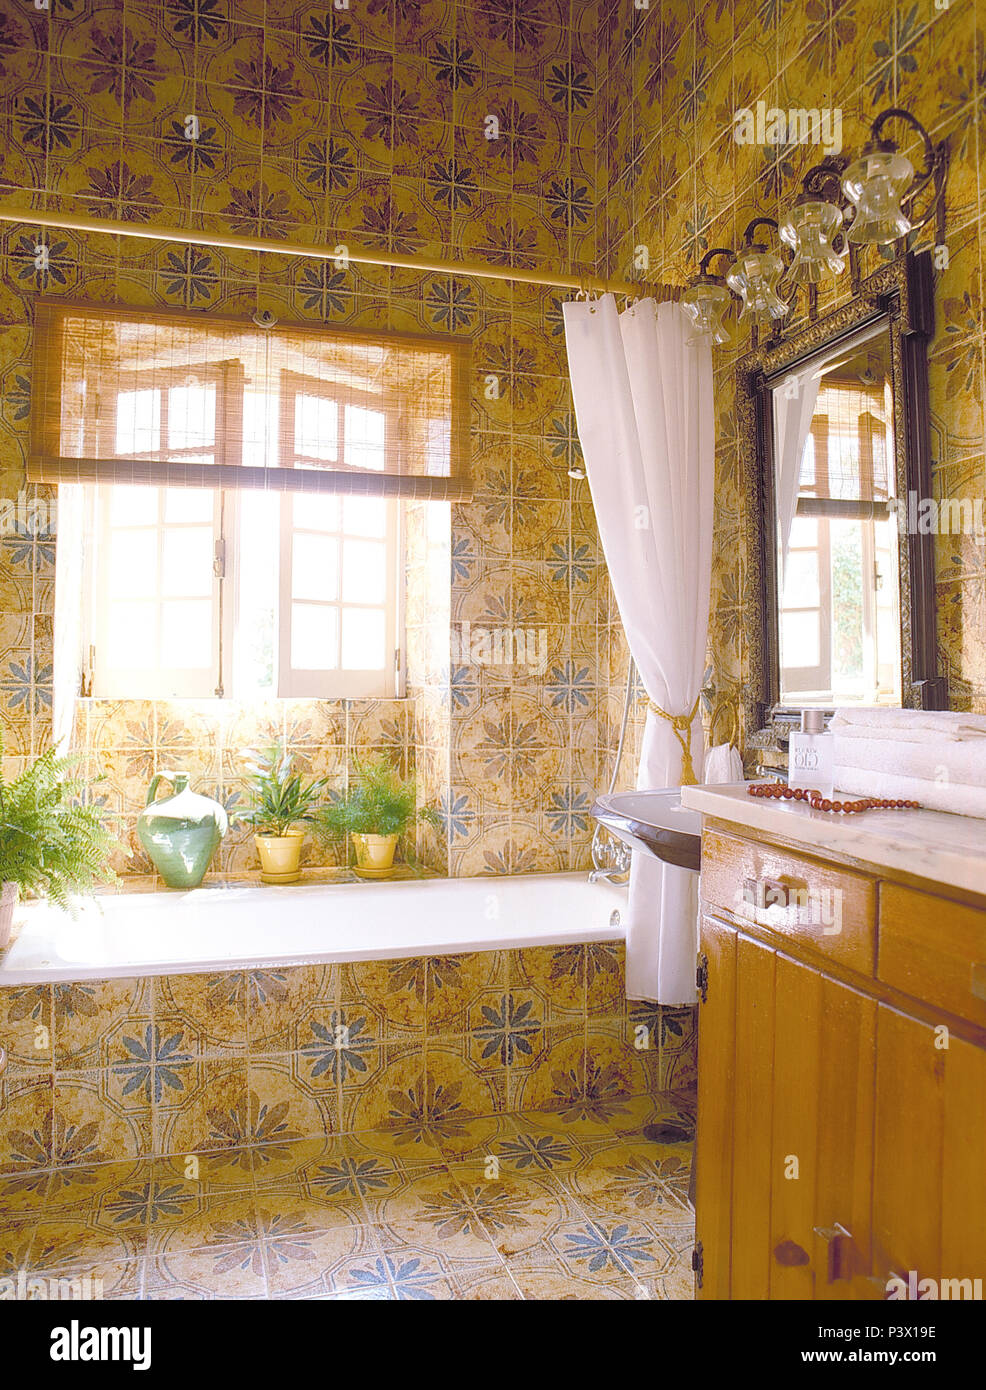 https www alamy com white shower curtain on bath in blueyellow tiled bathroom with open windows above the bath image208940186 html